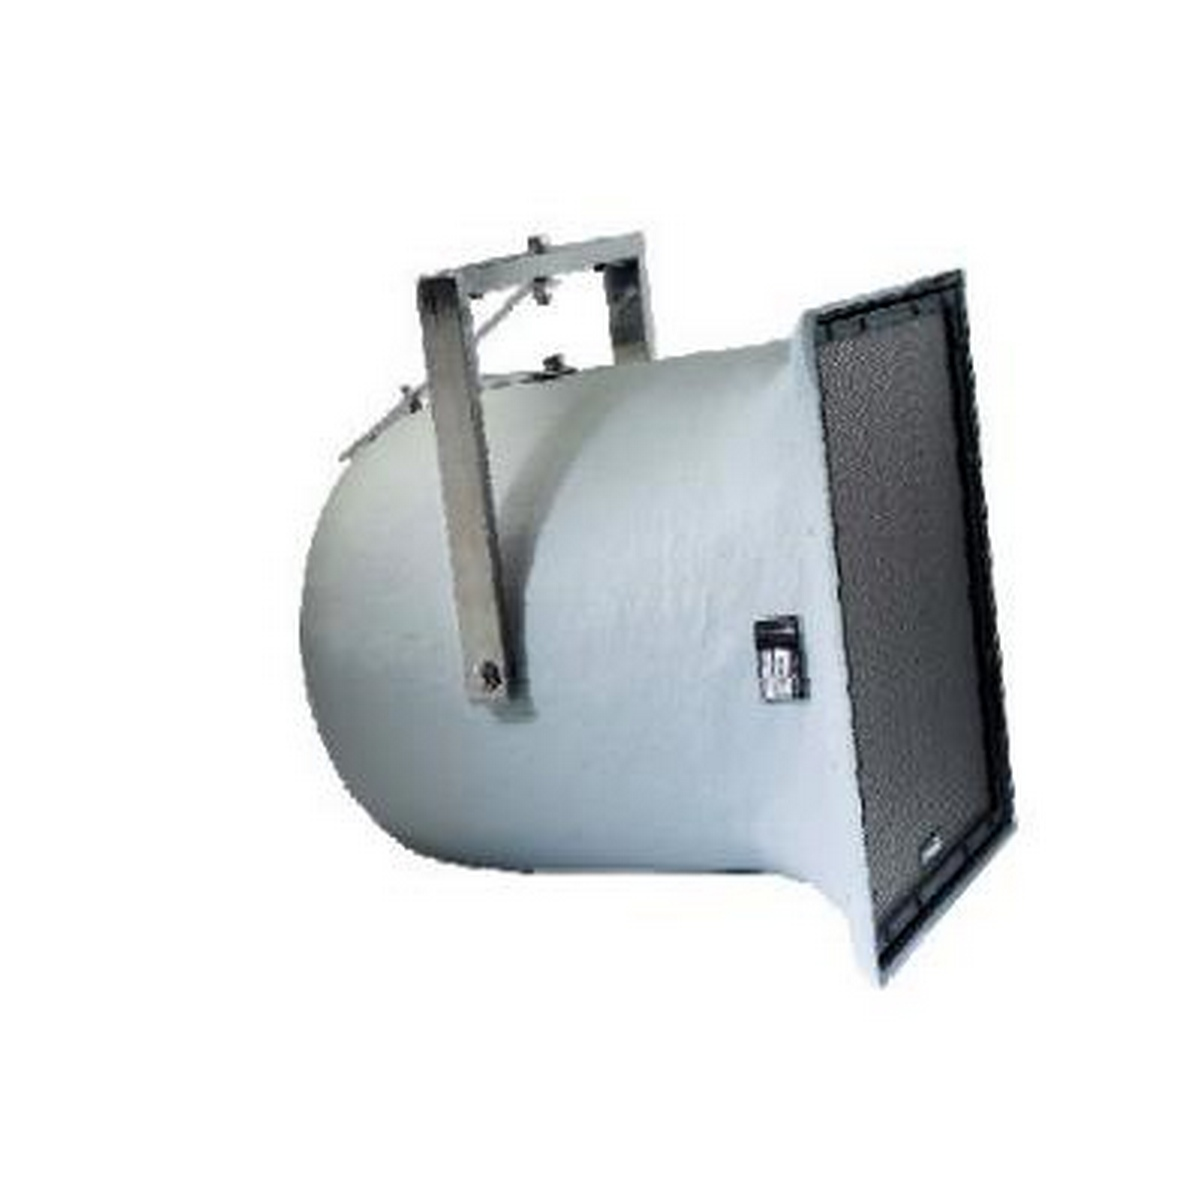 Community Three-way, Dual 12-inch, High Output Horn-loaded, 50 x 20 Long projection, 70 Hz - 16 kHz, 50° H x 20° V